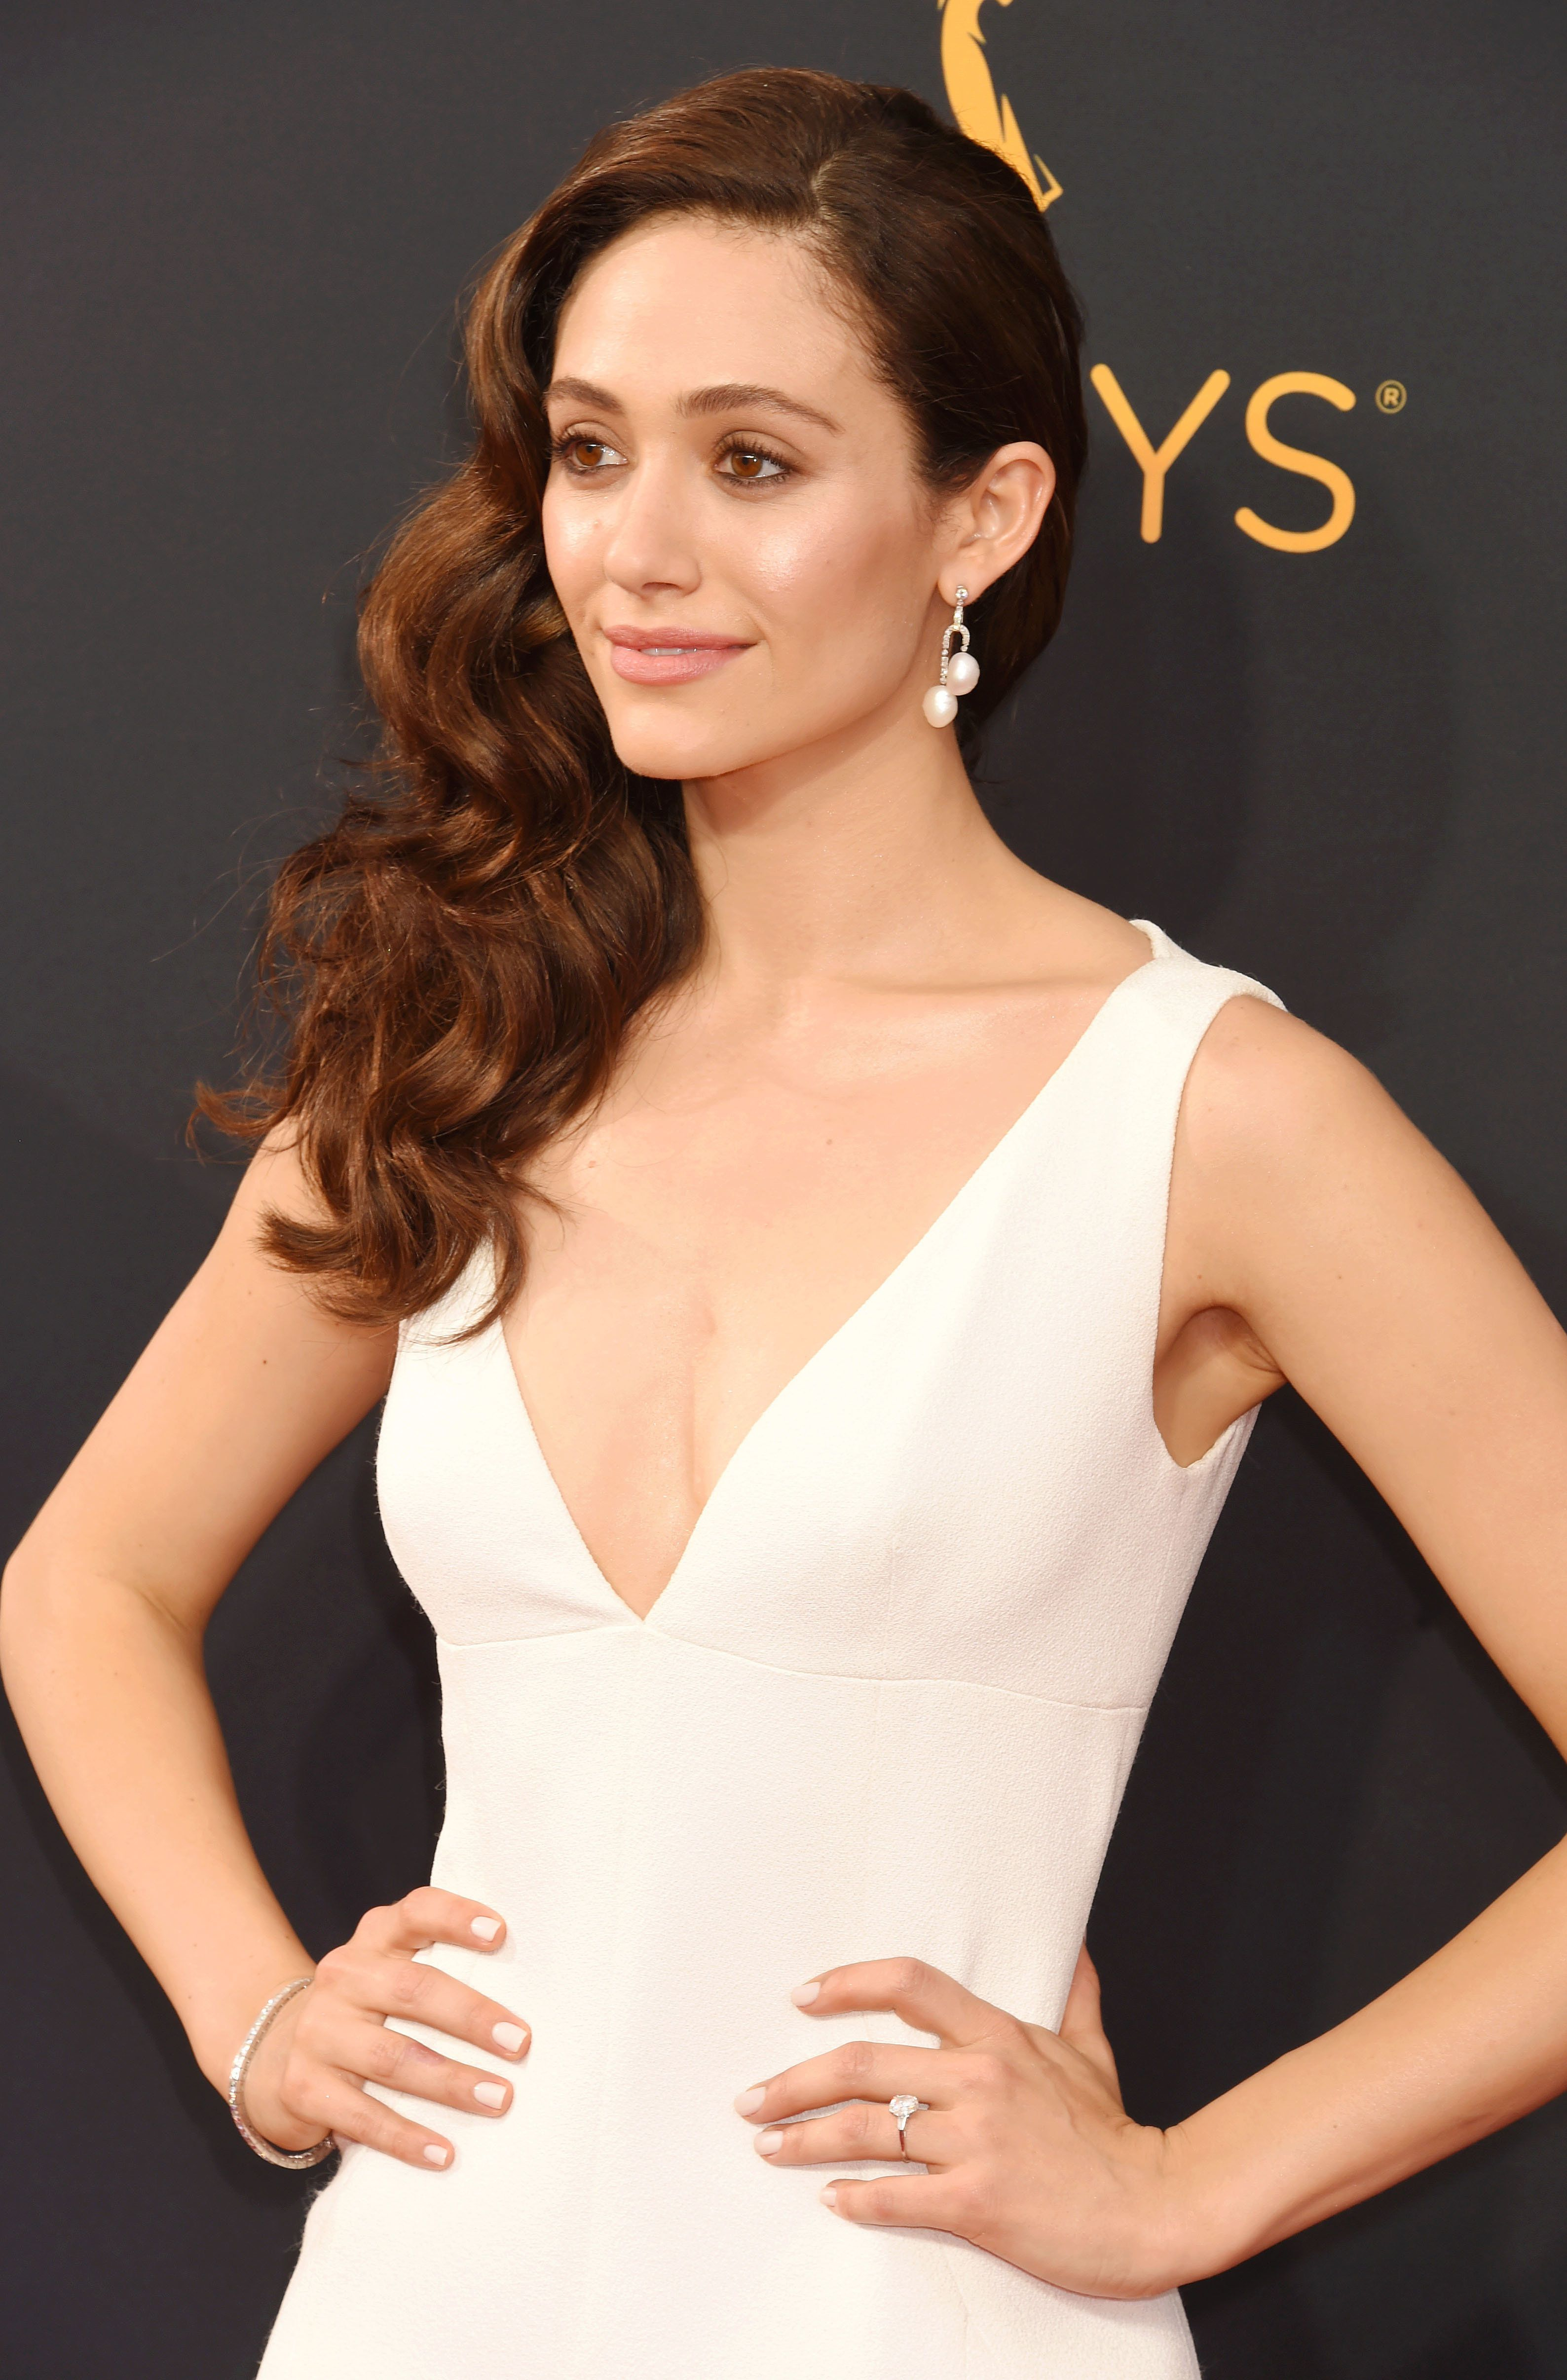 LOS ANGELES, CA - SEPTEMBER 18: Actress Emmy Rossum arrives at the 68th Annual Primetime Emmy Awards at Microsoft Theater on September 18, 2016 in Los Angeles, California. (Photo by Jeffrey Mayer/WireImage)